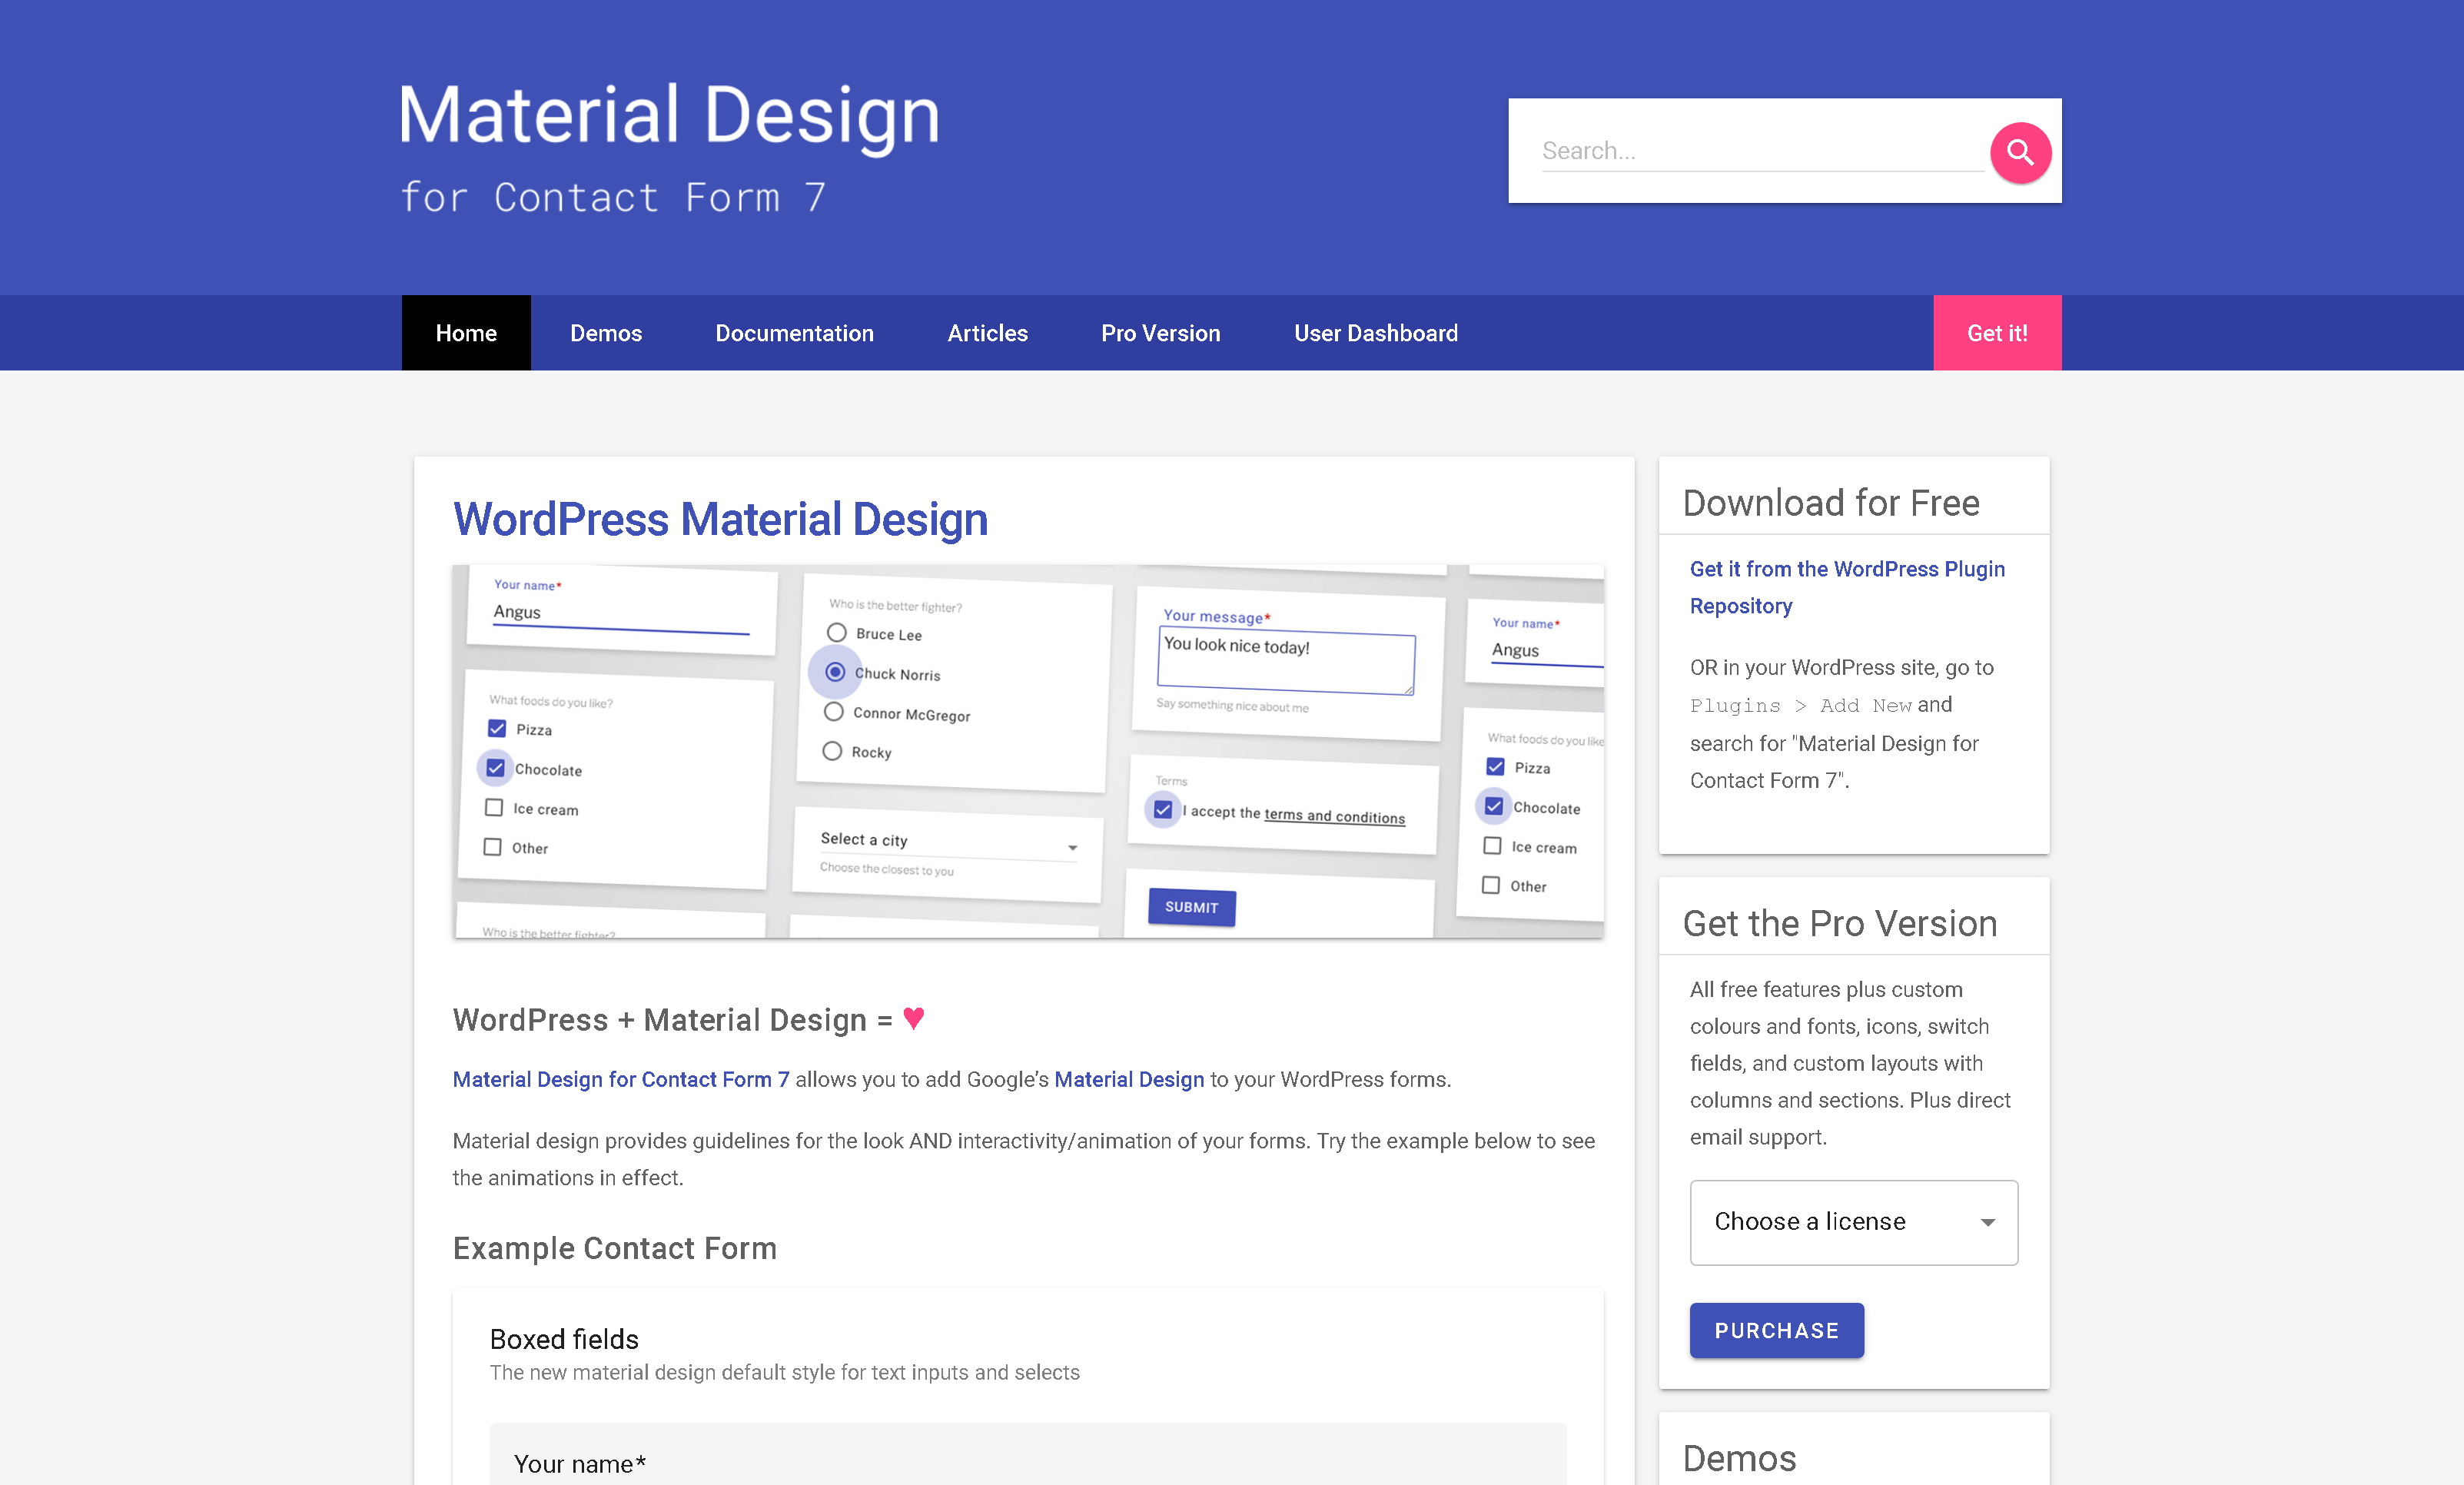 Material Design for Contact Form 7 Pro 2.6.1 – WordPress Material Design